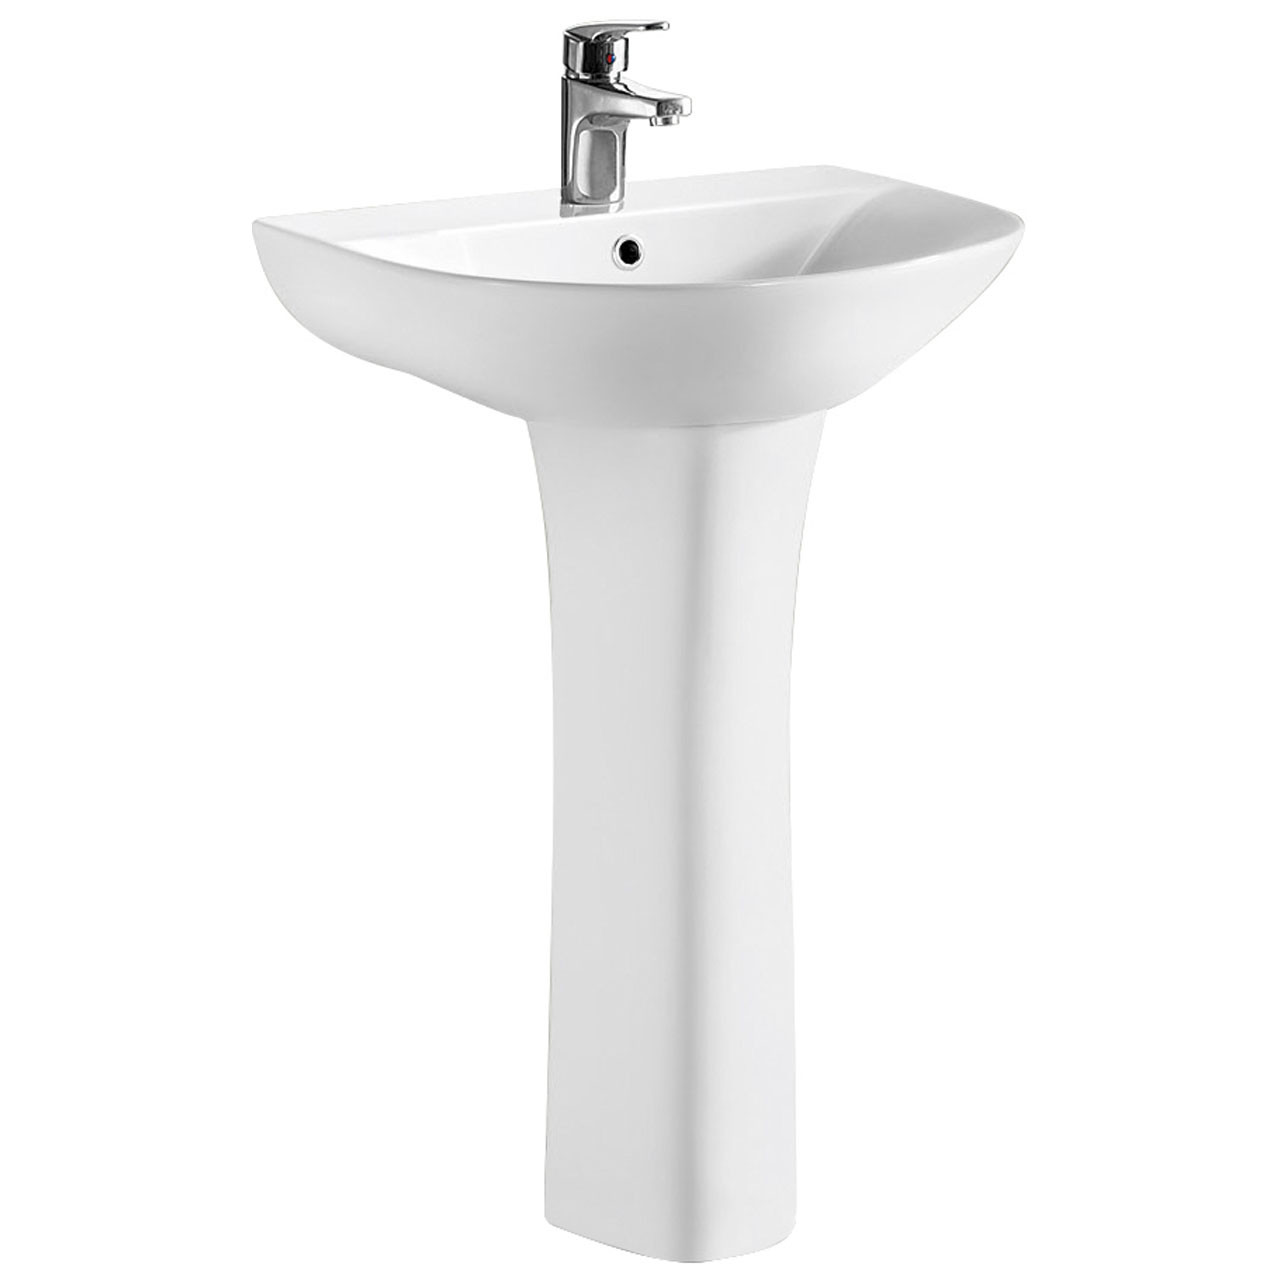 Premier Freya 550mm Basin with 1 Tap Hole and Full Pedestal - NCG300